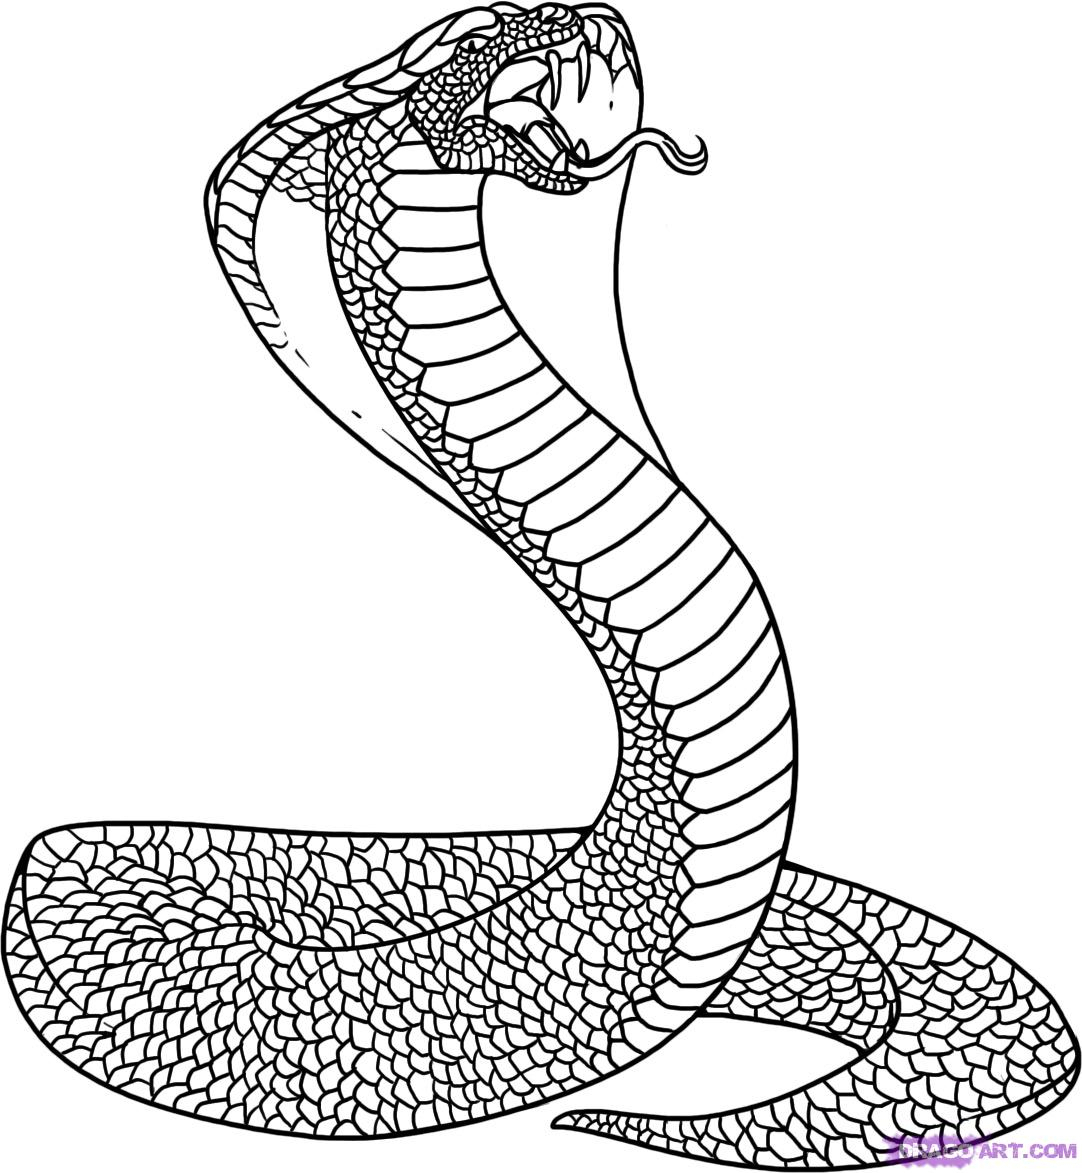 How to draw a king cobra